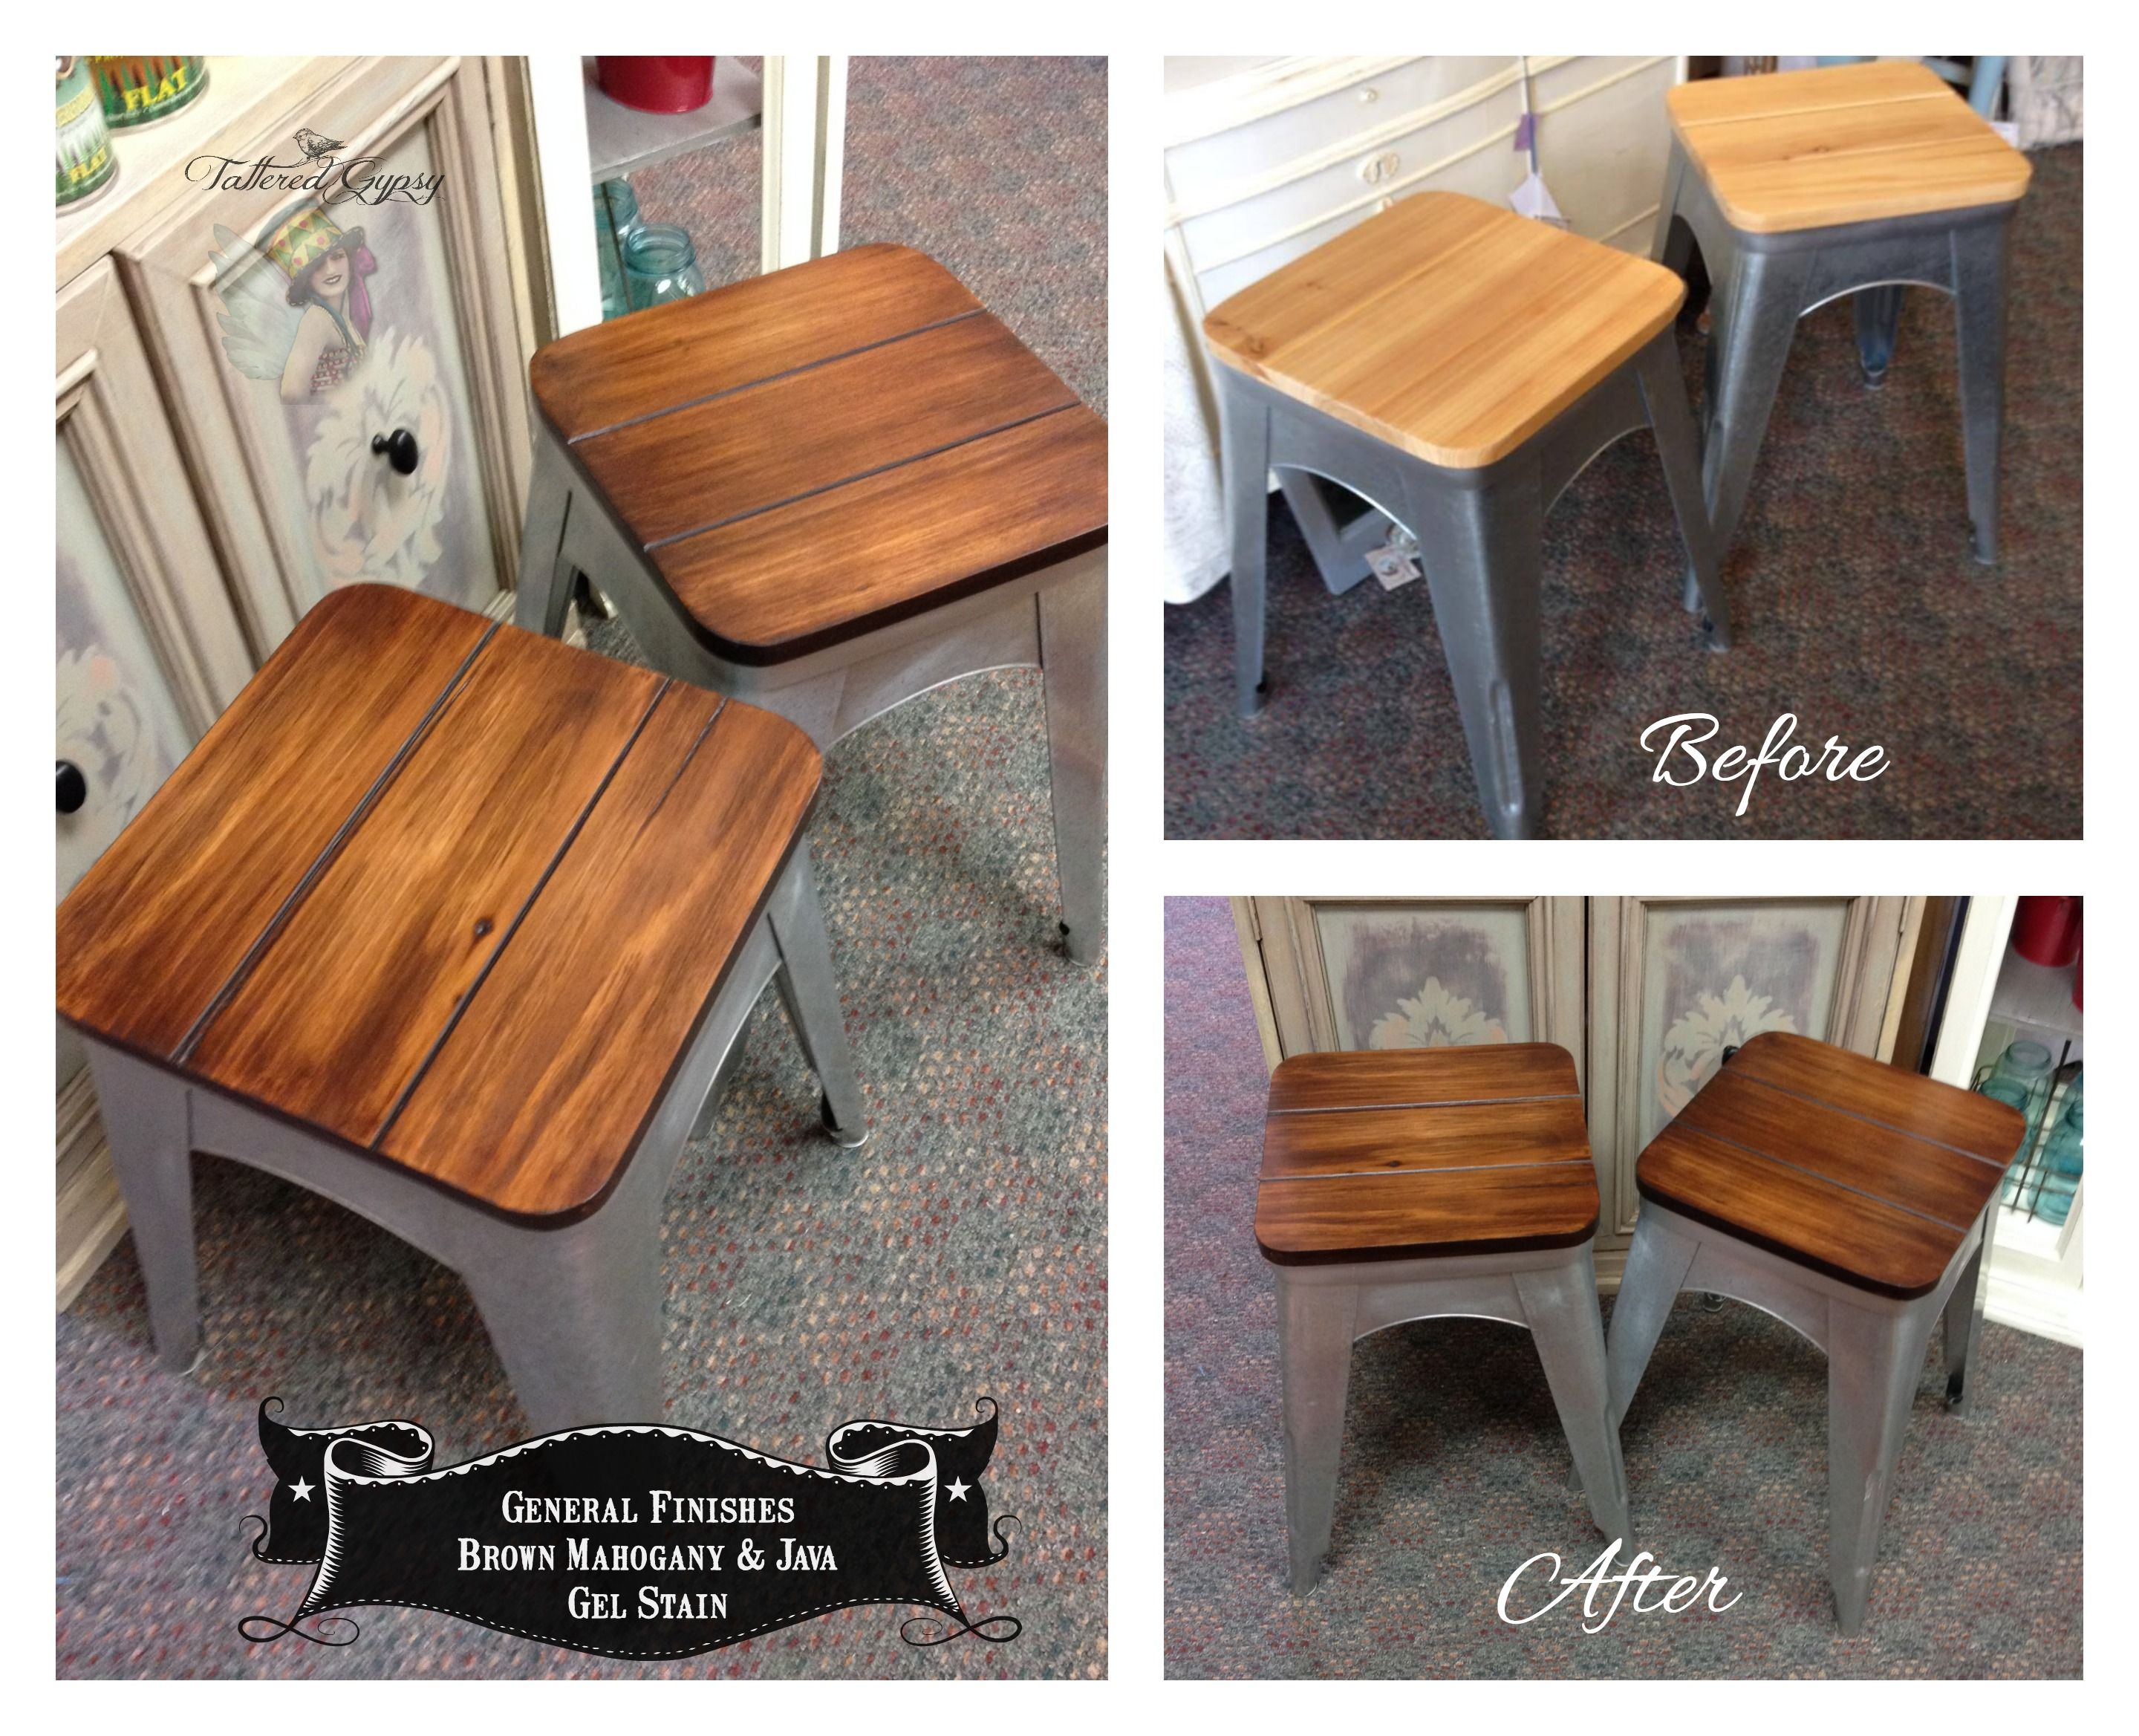 Metal and wood stools updated with General Finishes Brown Mahogany